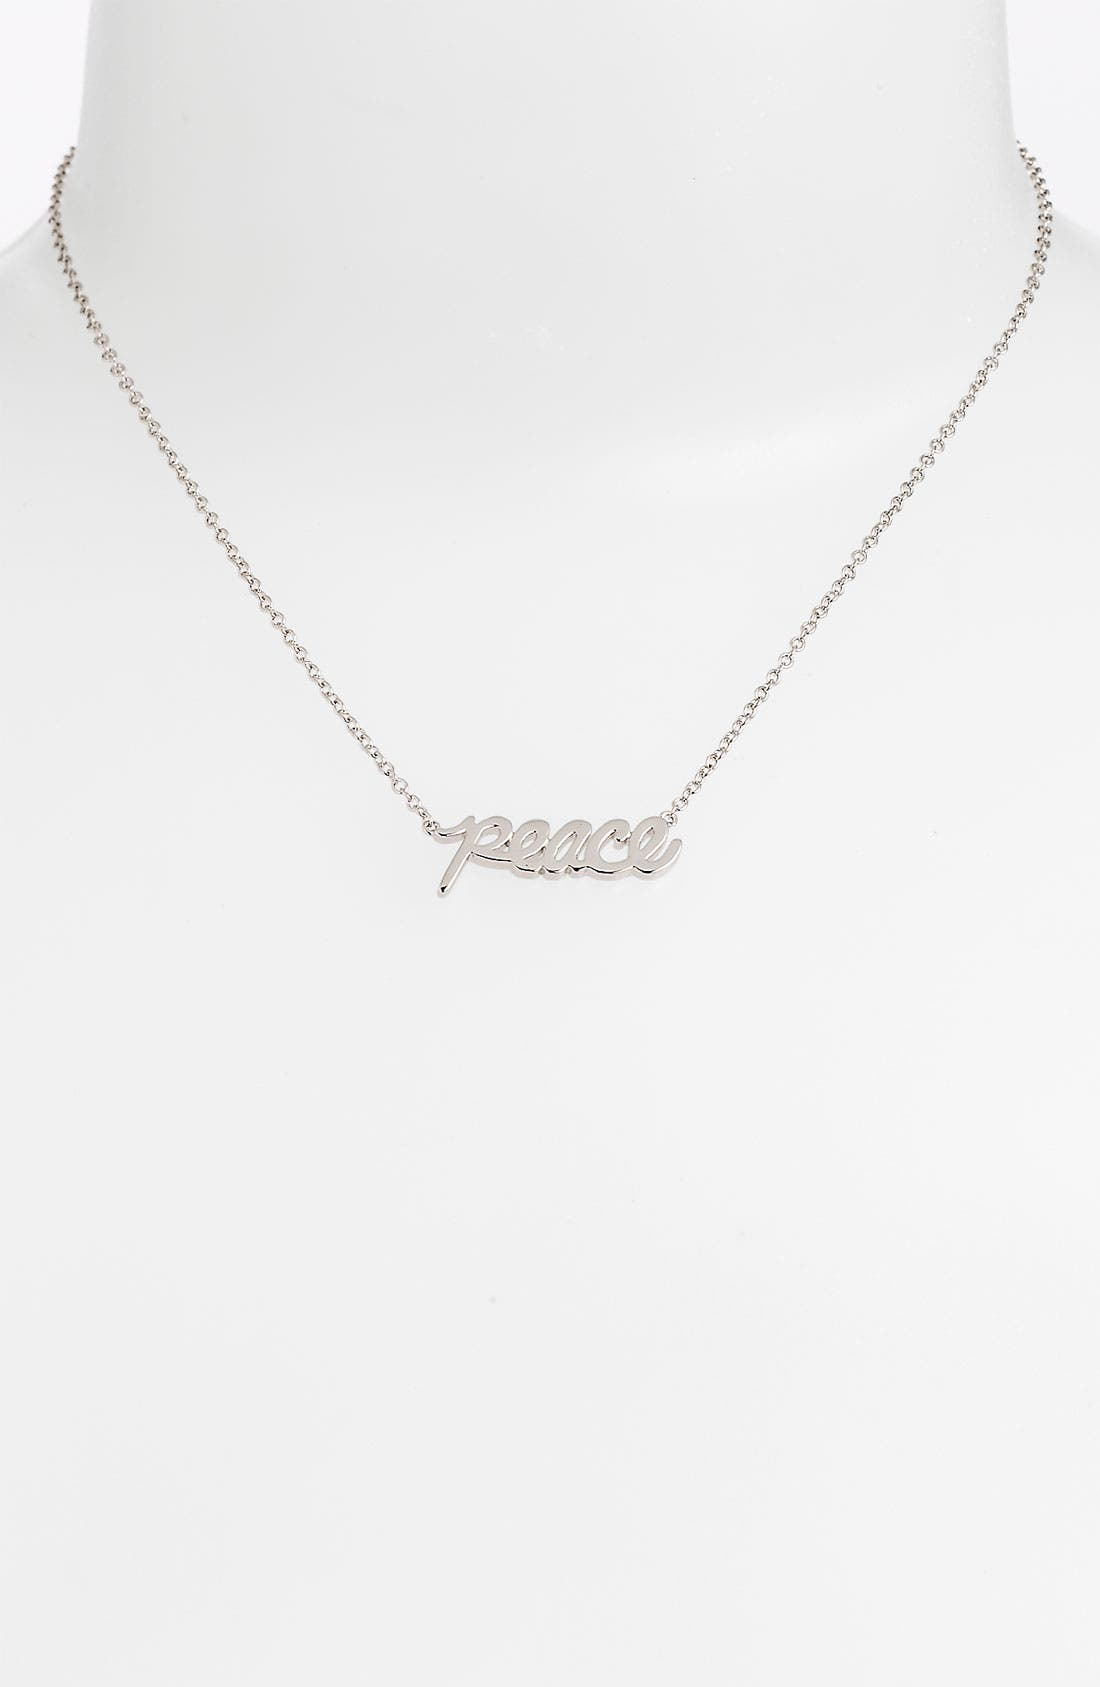 Main Image - Ariella Collection 'Messages - Peace' Script Pendant Necklace (Nordstrom Exclusive)